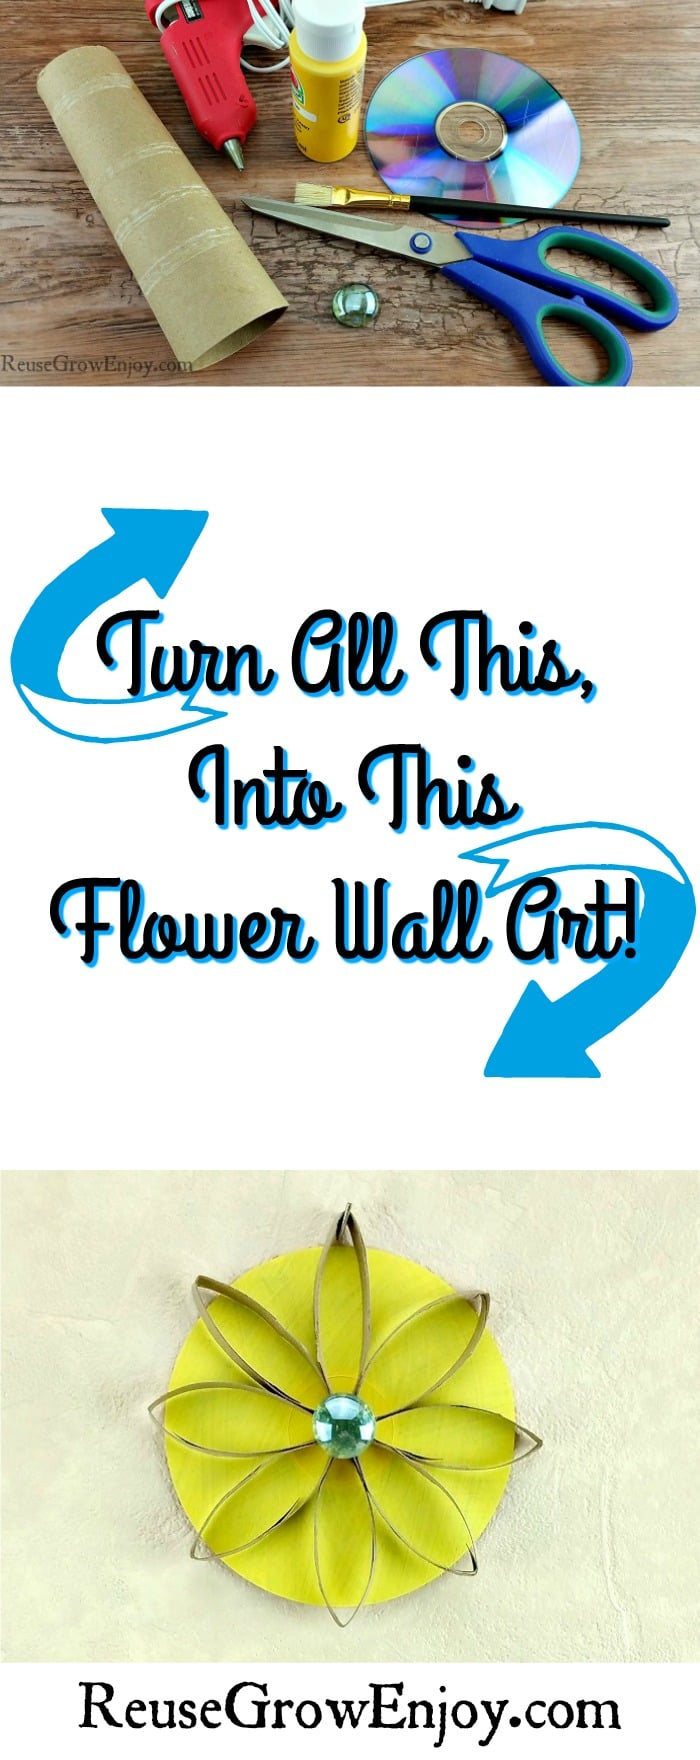 Recycled Flower Wall Art